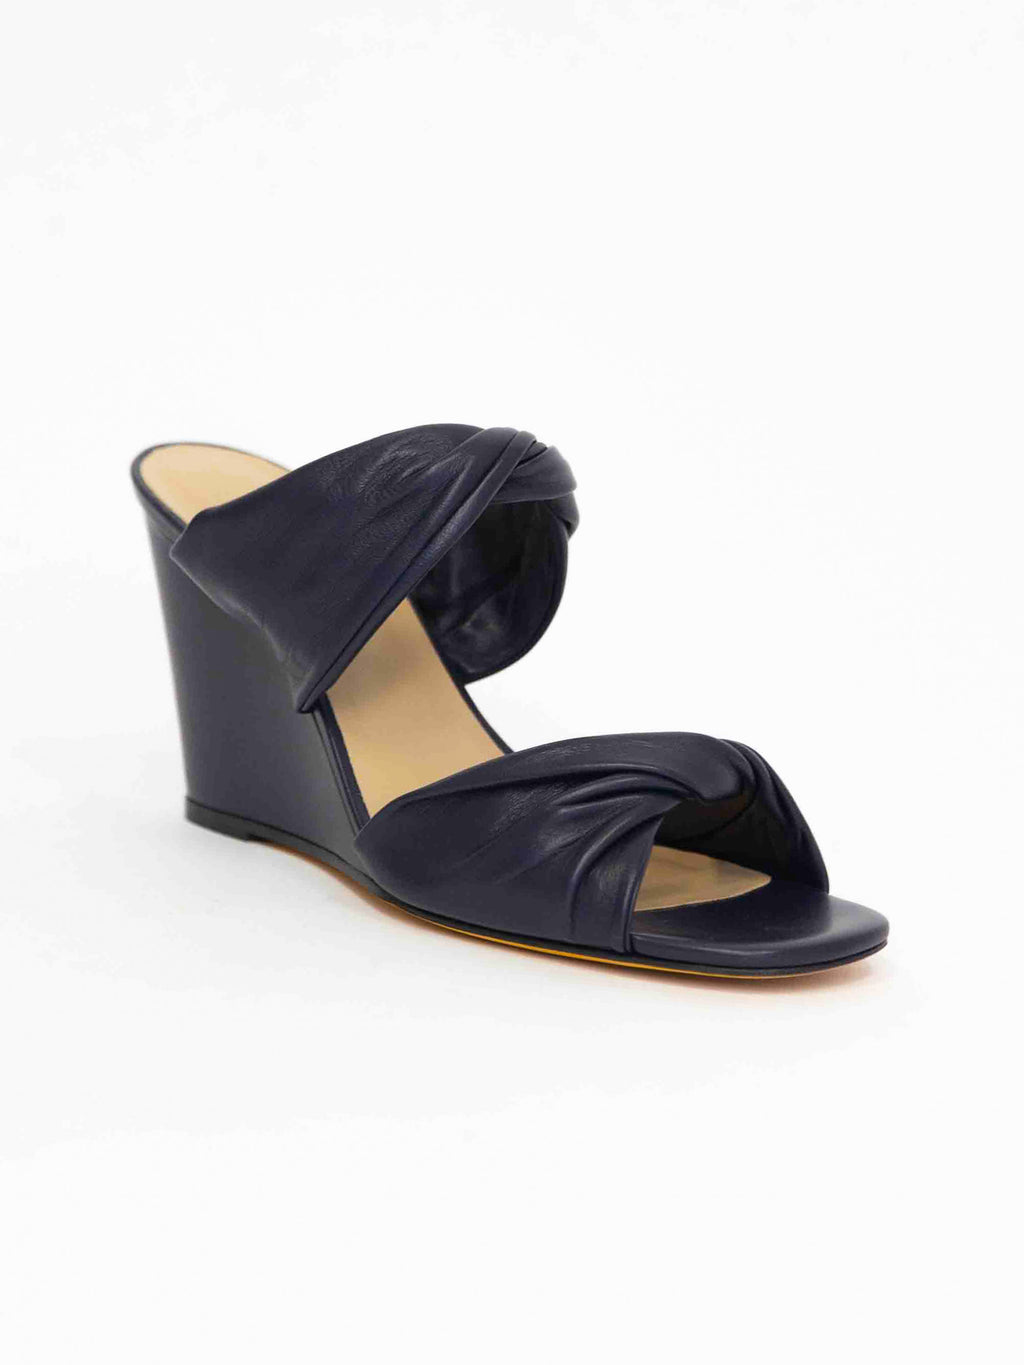 Carine Knotted Wedge - Night